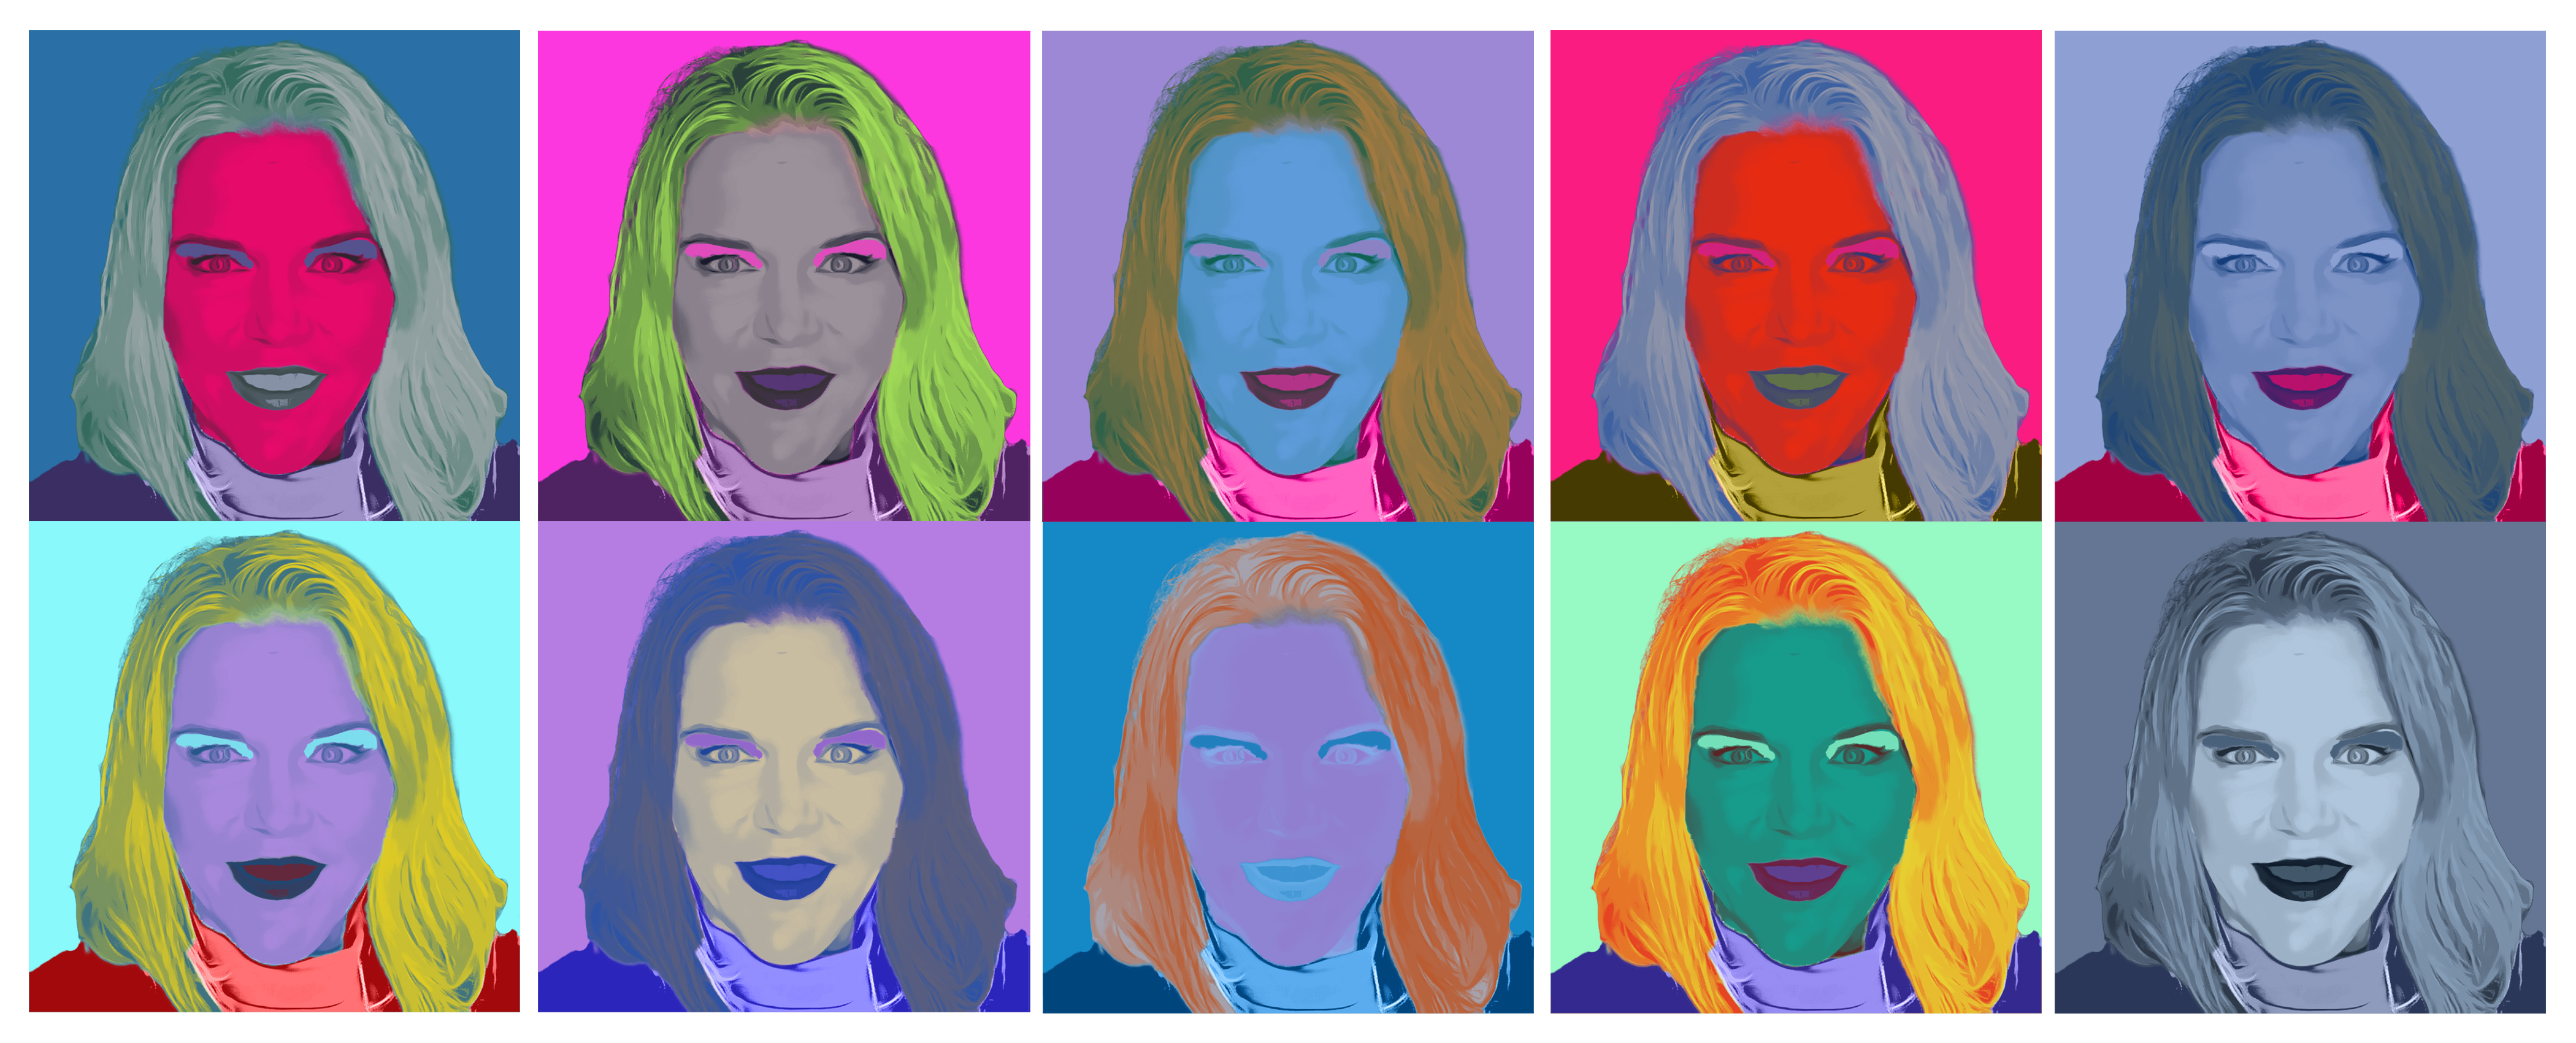 Andy Warhol Pop Art style